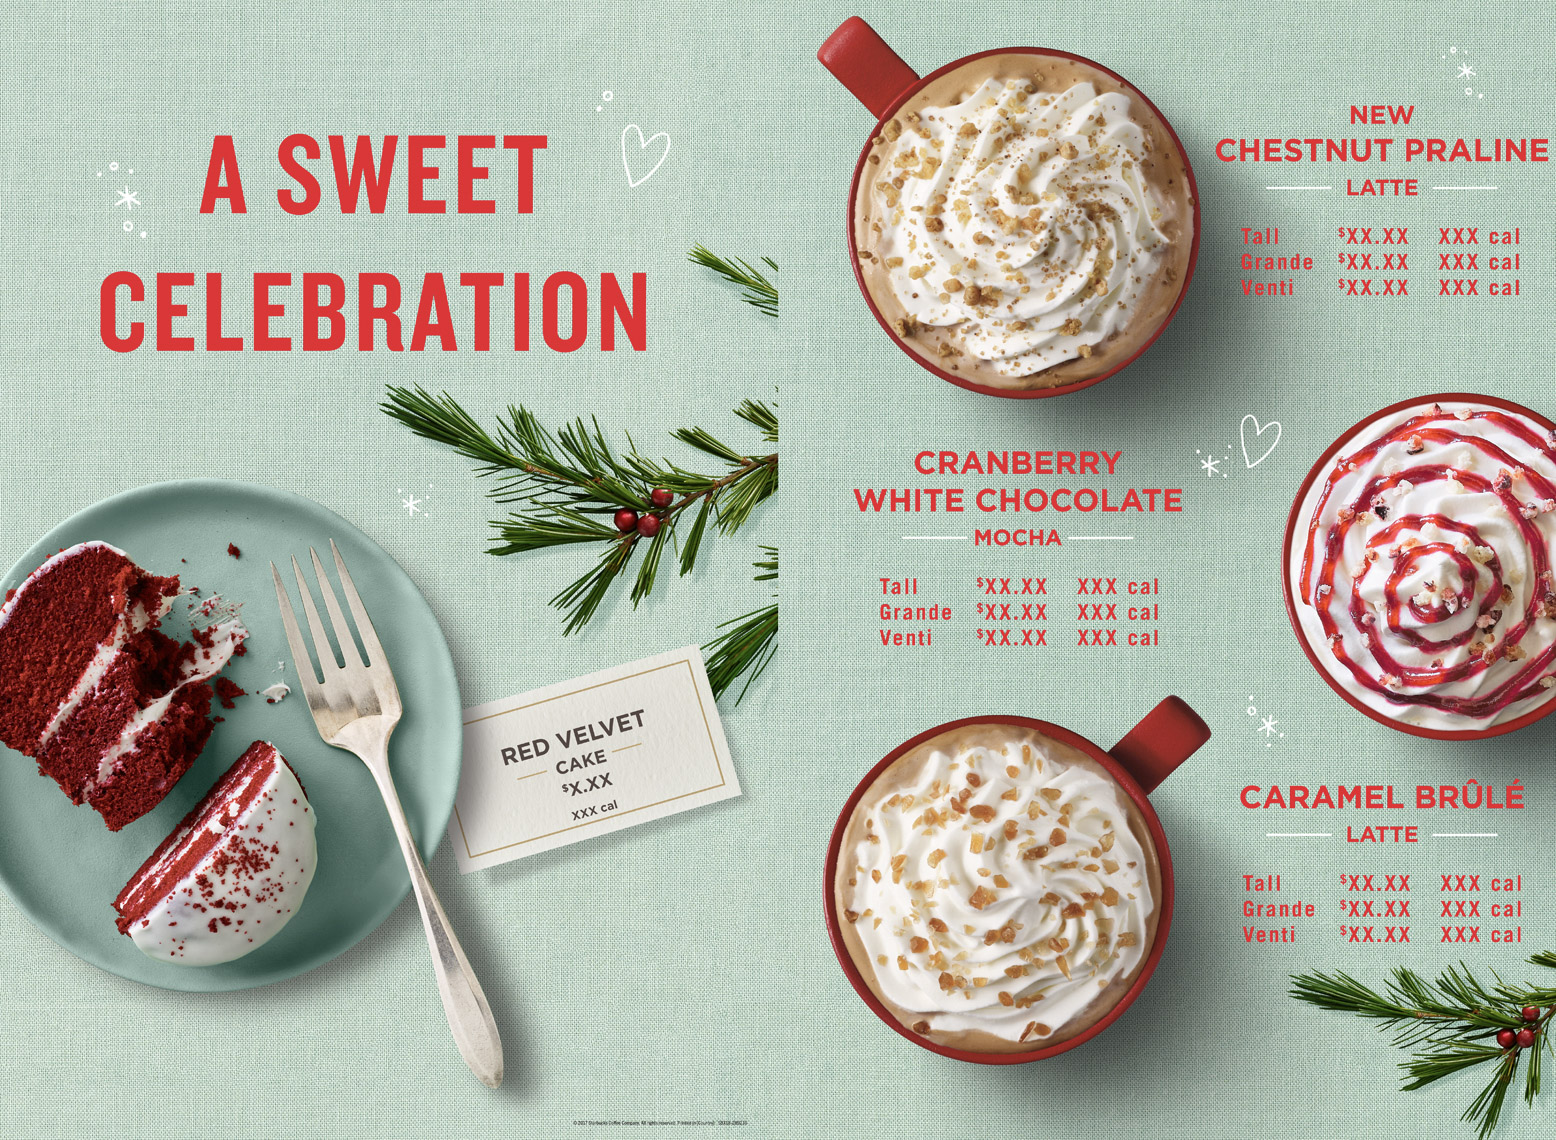 food stylist in San Francisco - Holiday latte, hot chocolate, hot coffee, red velvet cake. Starbucks Coffee - Saudi Arabia photographed by Annabelle Breakey photographer